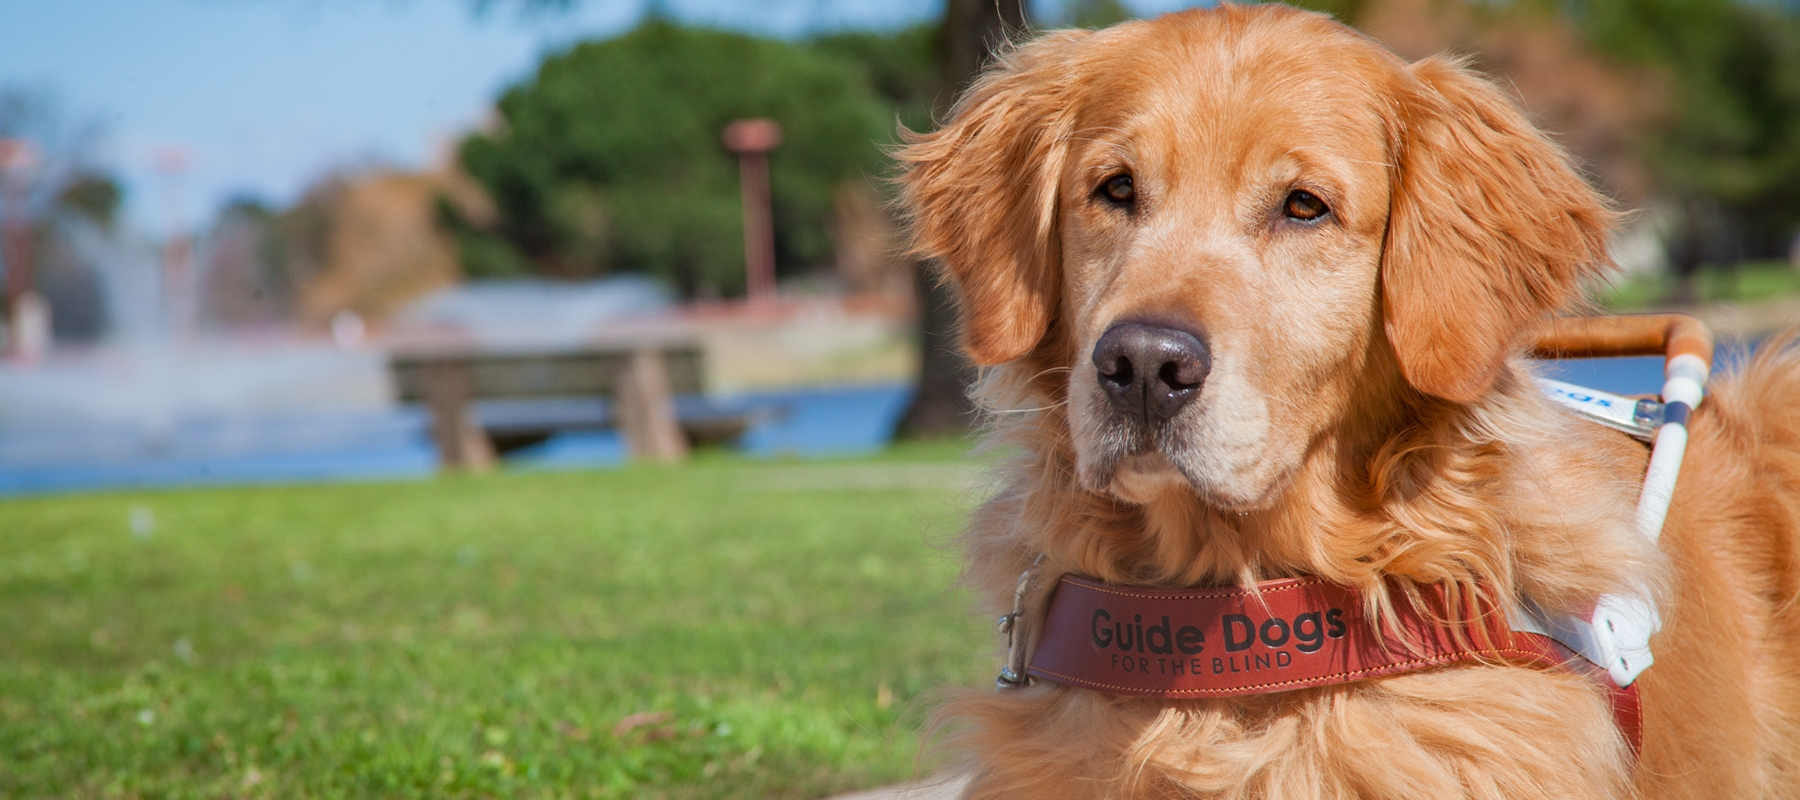 A Golden Retriever guide dog gazes past the camera and lays on green grass while wearing a GDB guide dog harness. A pond of water and a wooden bench is pictured in the background.